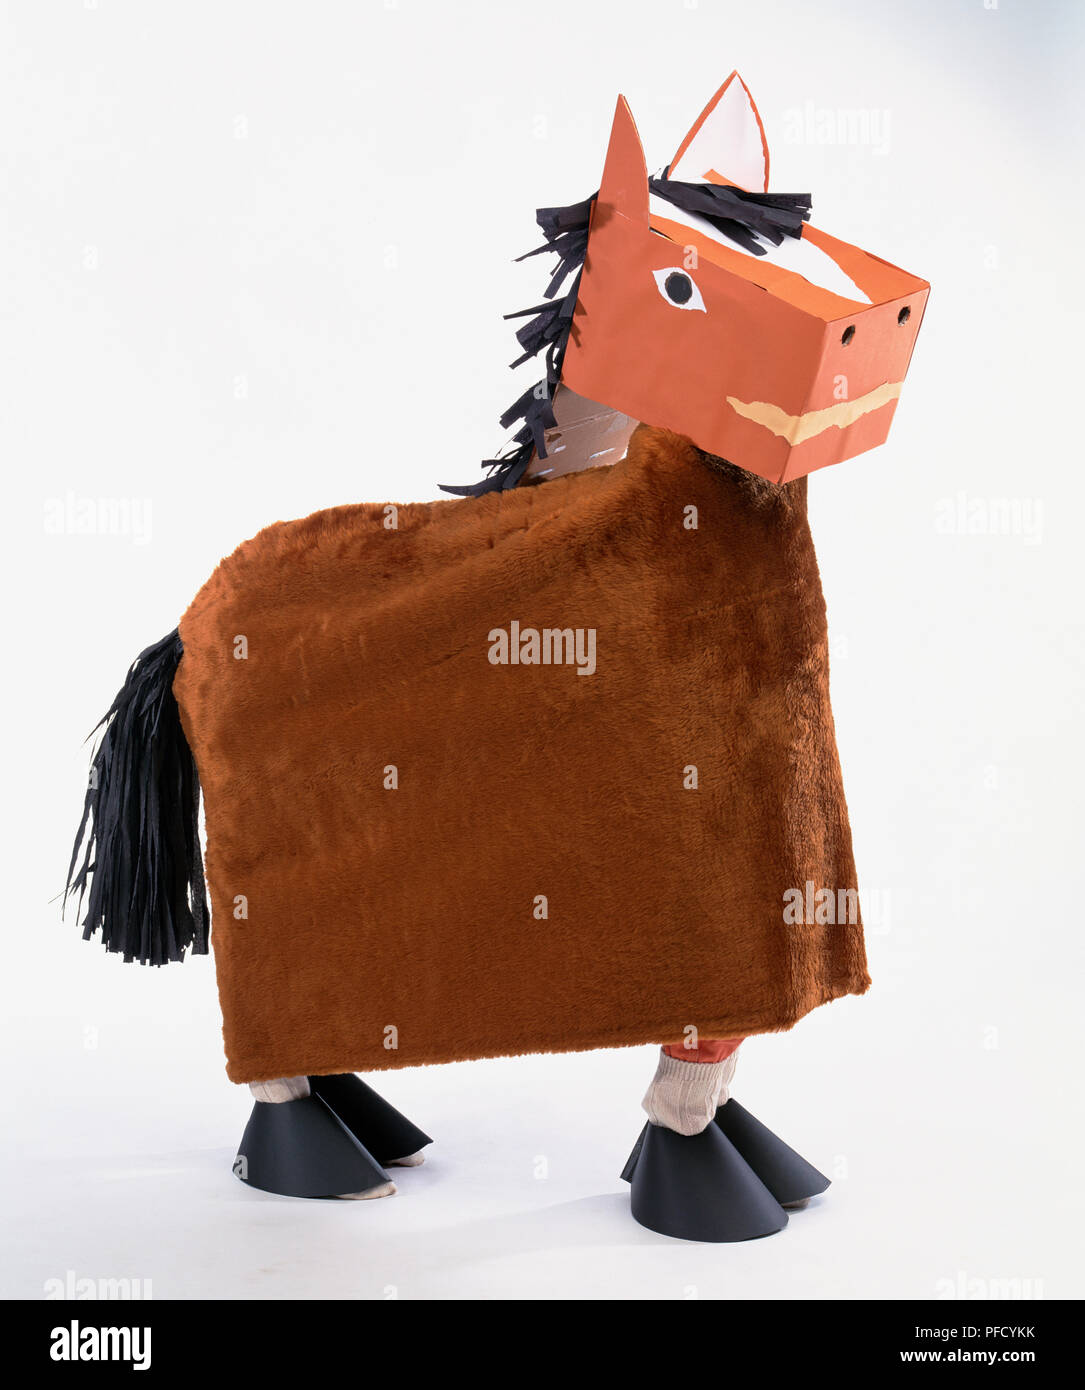 Two Children Wearing Horse Costume One Standing Behind The Other To Form Body And All Four Legs Brown Horse With Black Feet Tail And Mane Box Shaped Head With Eyes Nostrils And Smiling